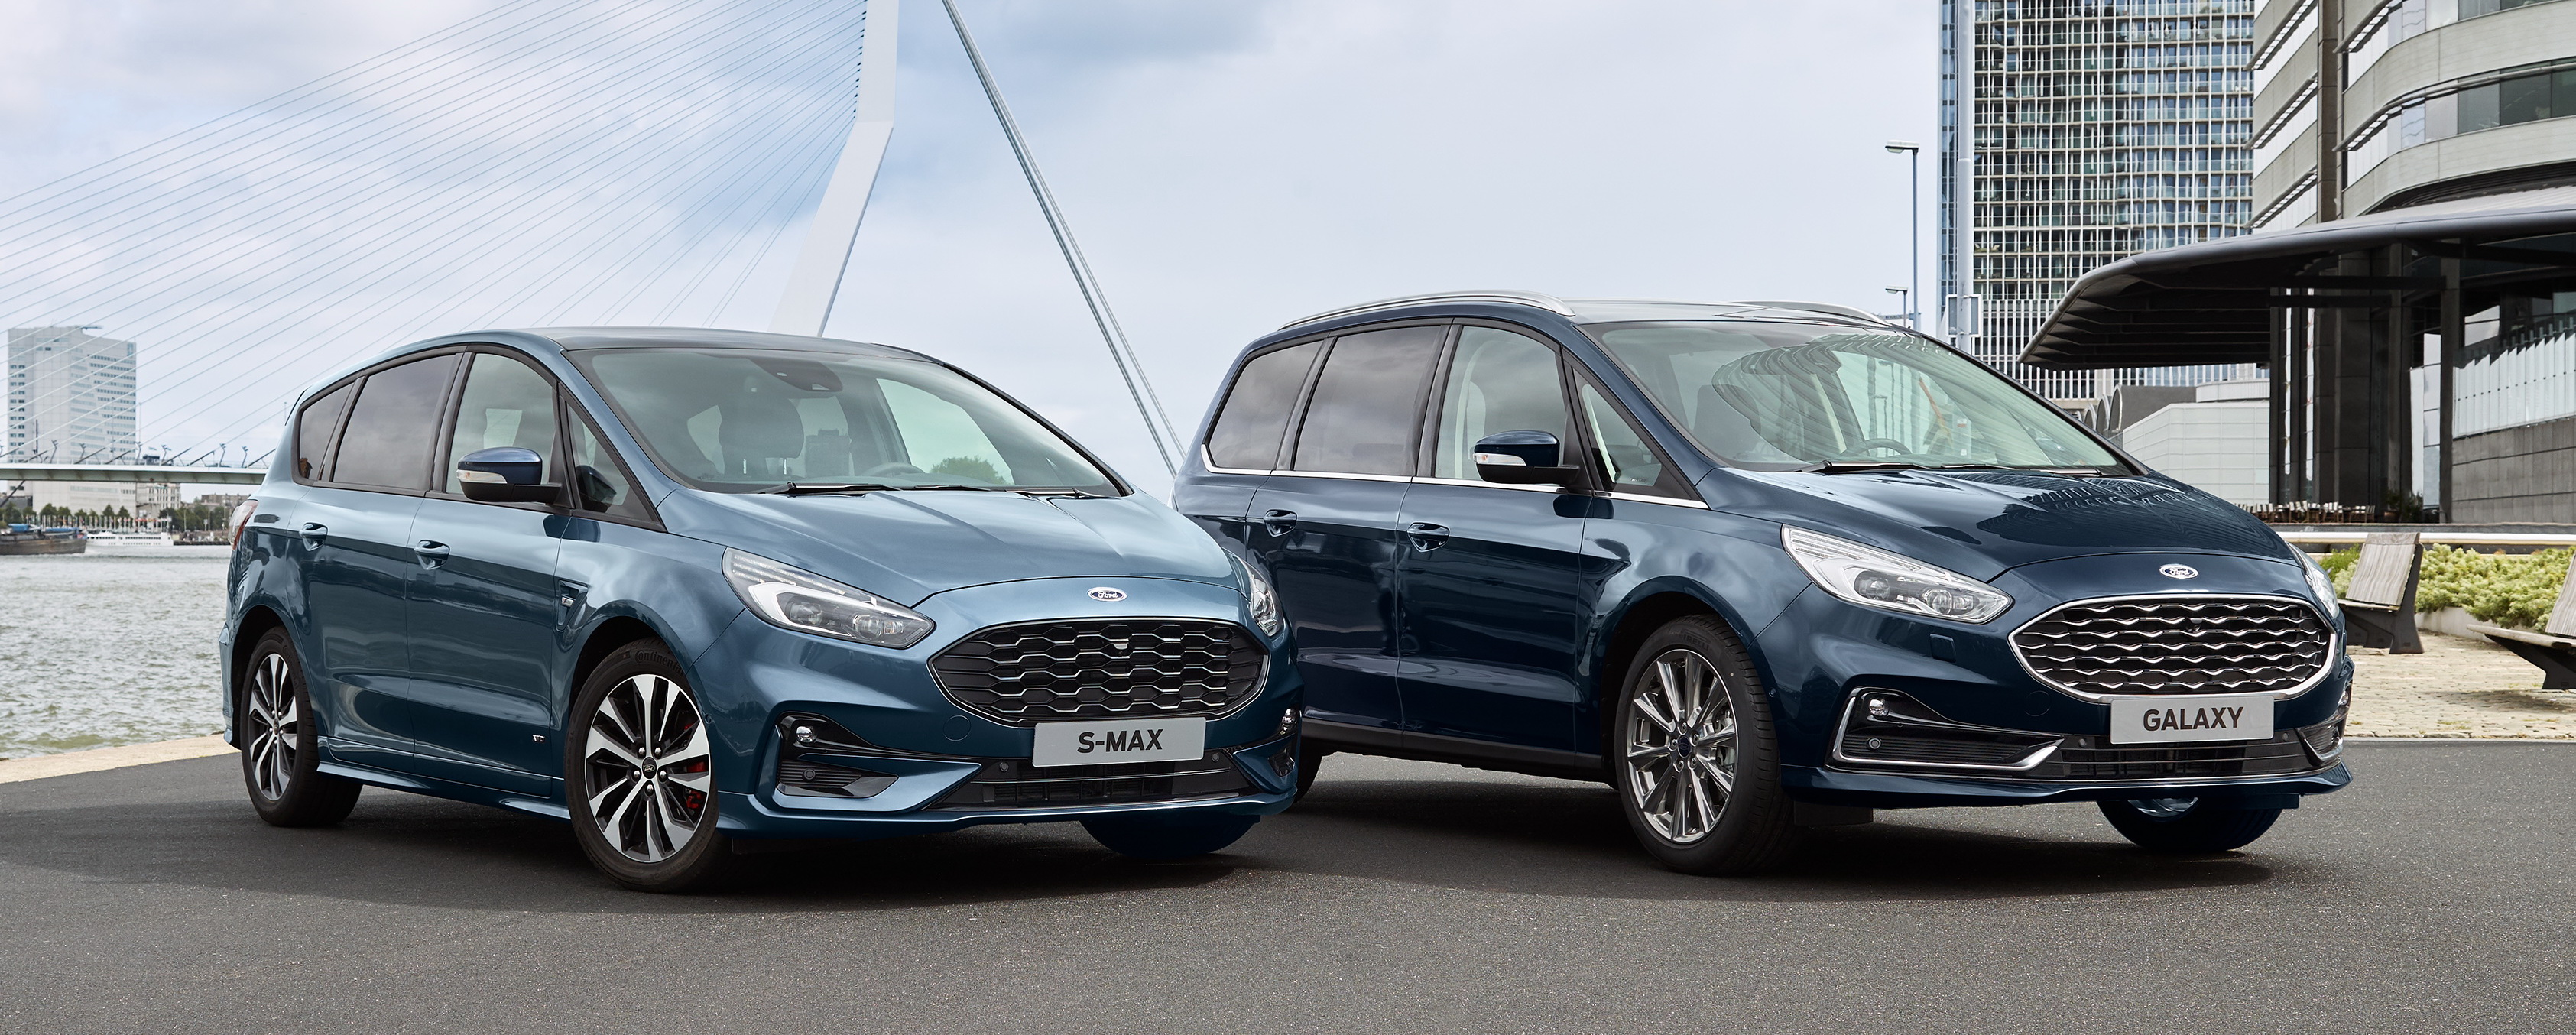 Ford Europe Still Believes In Minivans, Updates S-Max And Galaxy